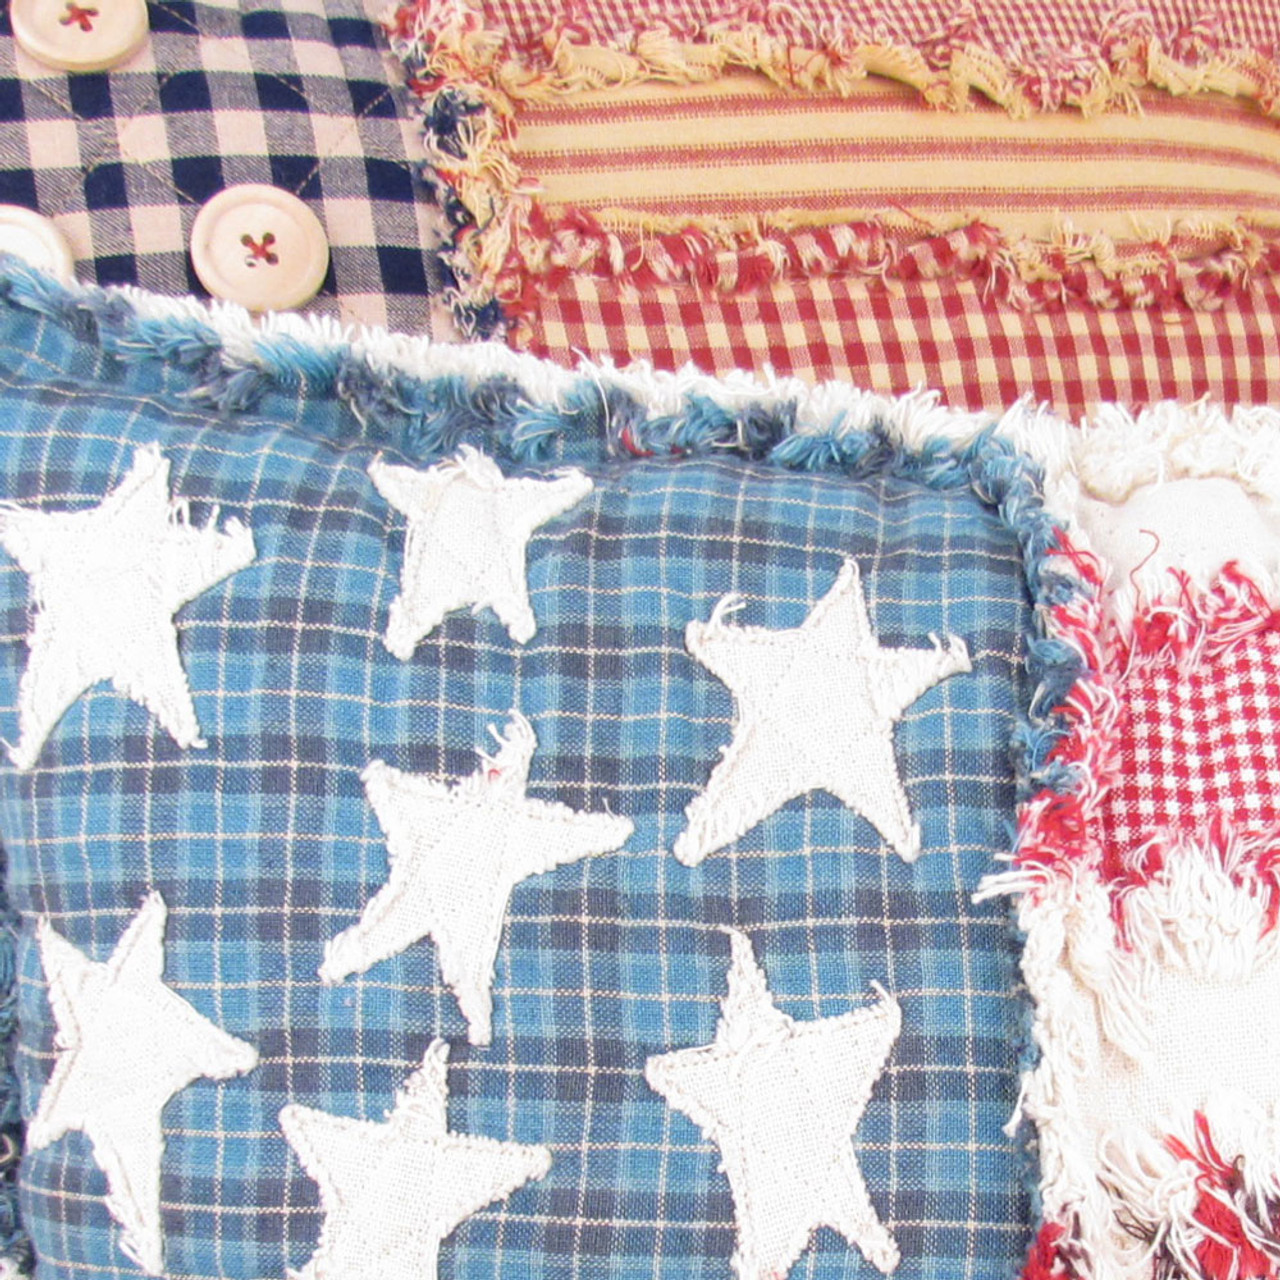 Freedom Flag Ragged Pillow Pattern - Forever Free!  - Digital